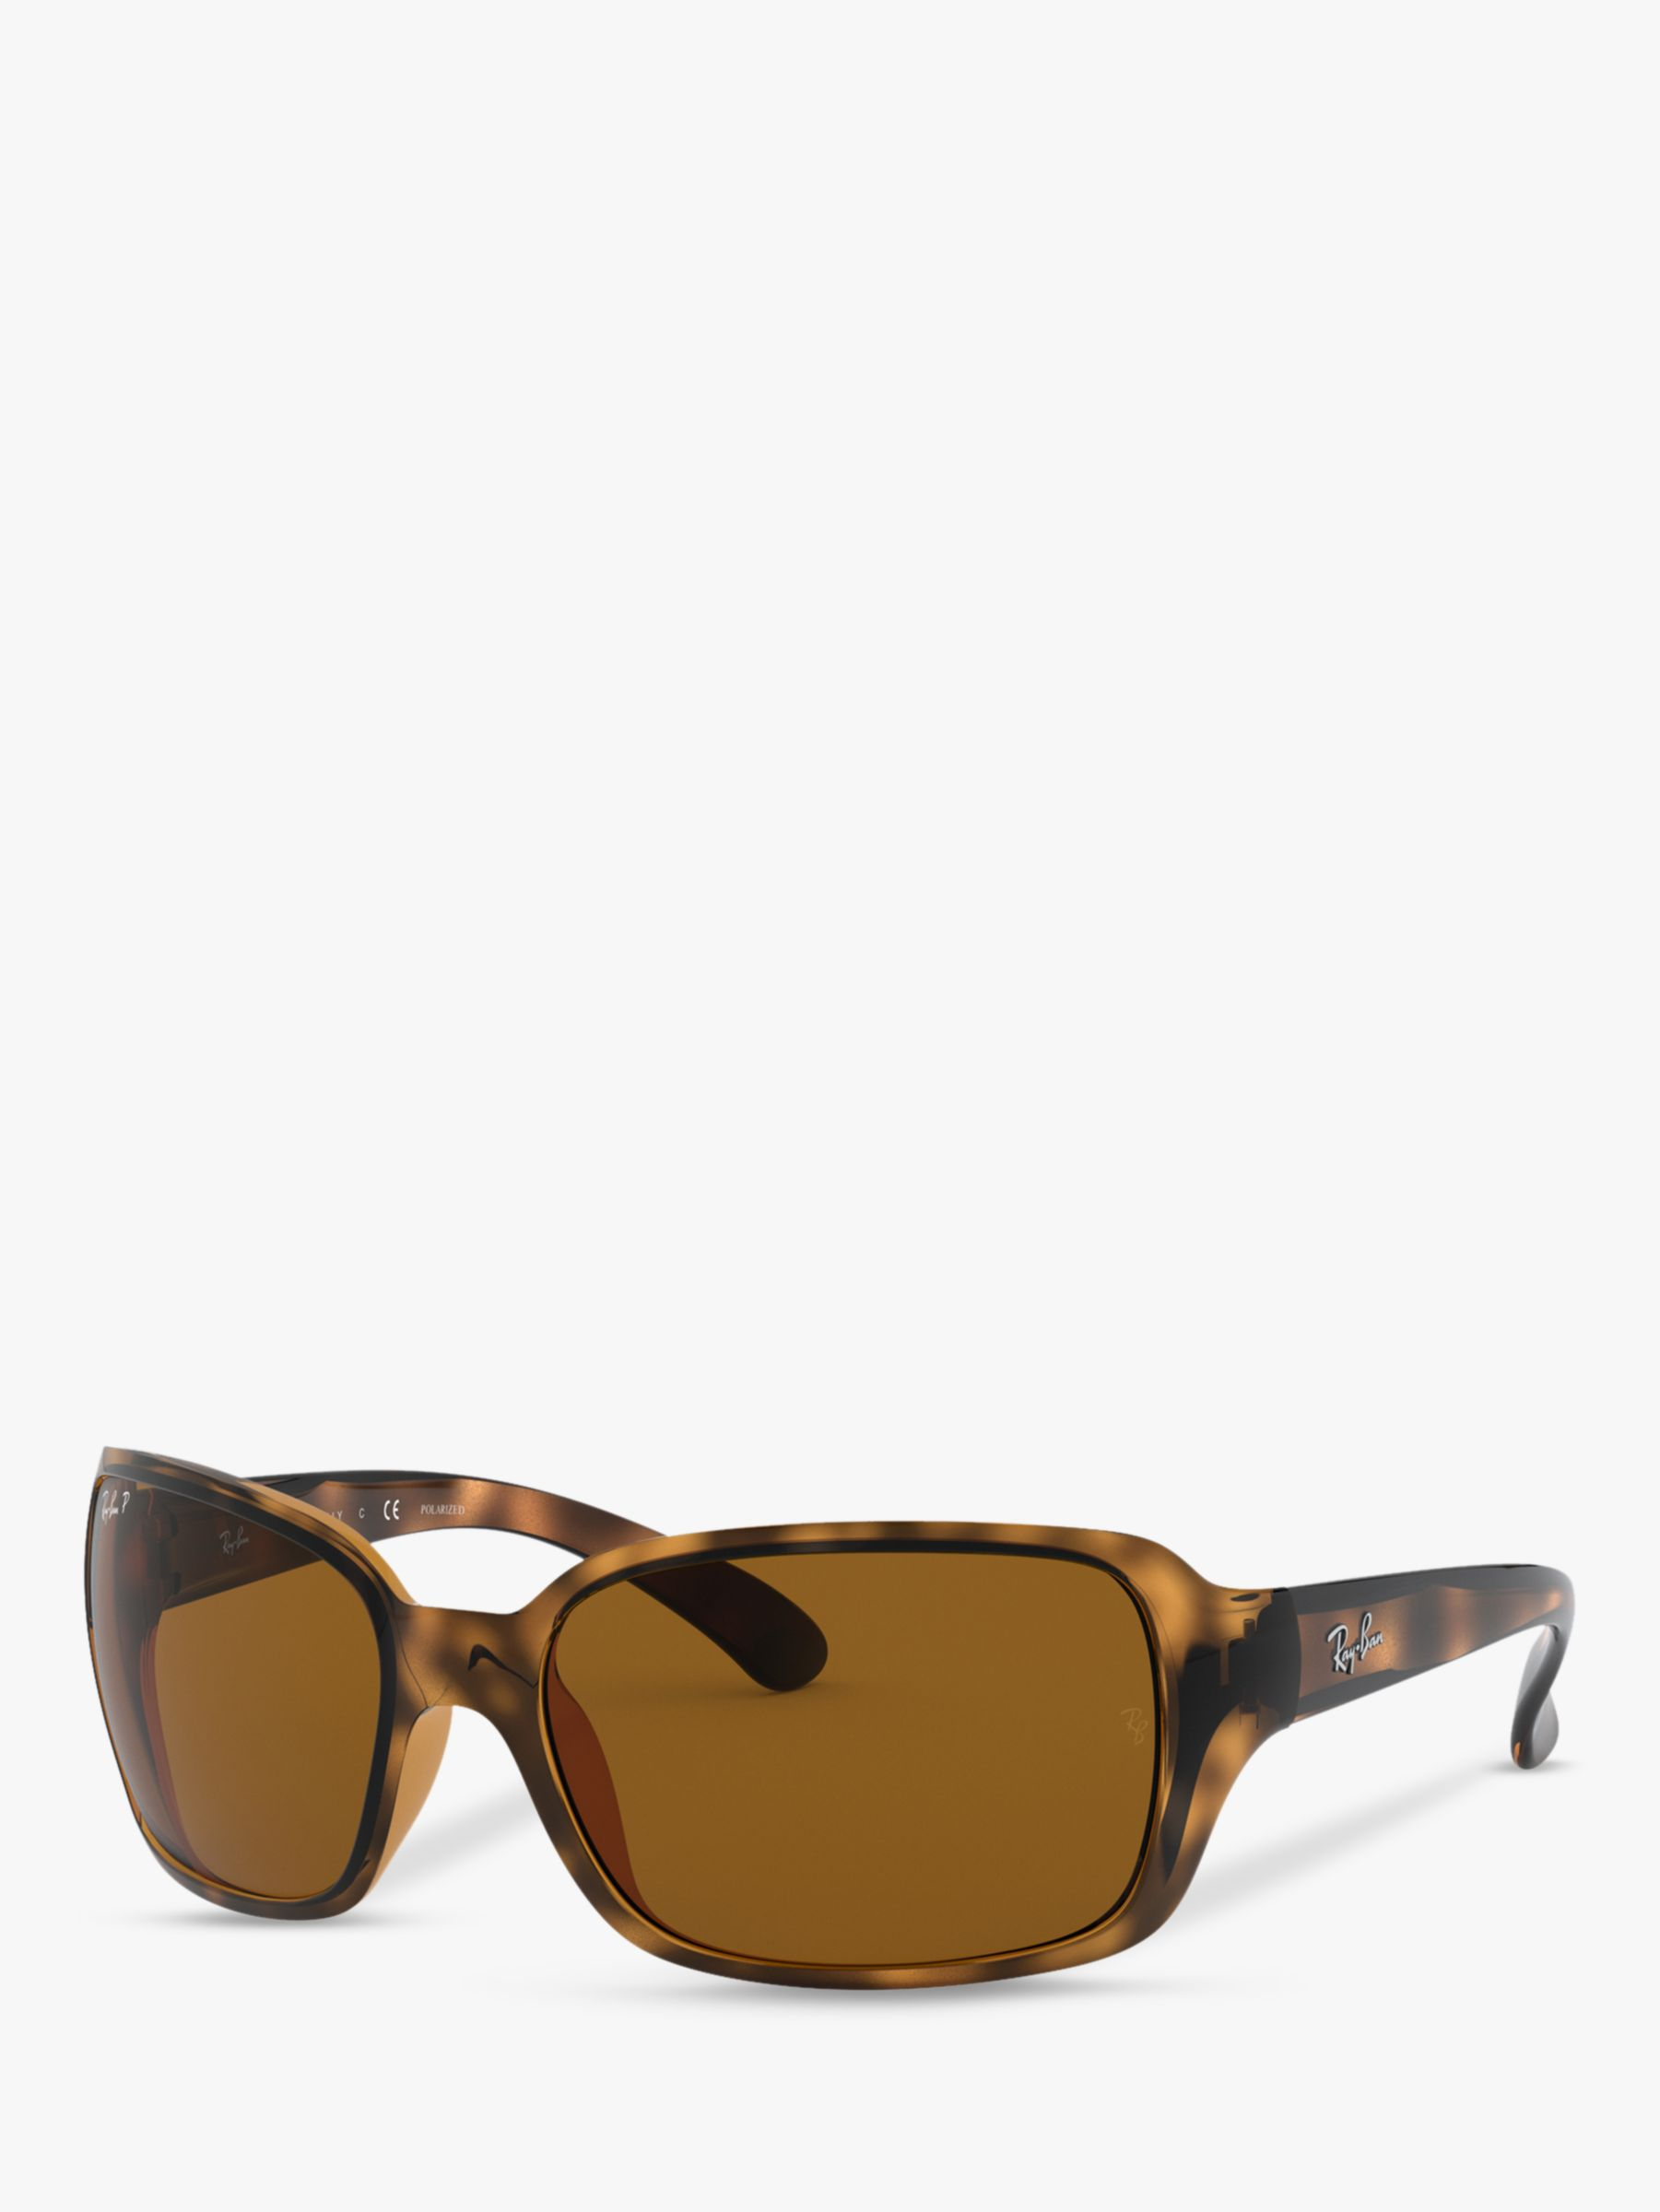 Ray-ban Ray-Ban RB4068 Oversized Square Sunglasses, Havana